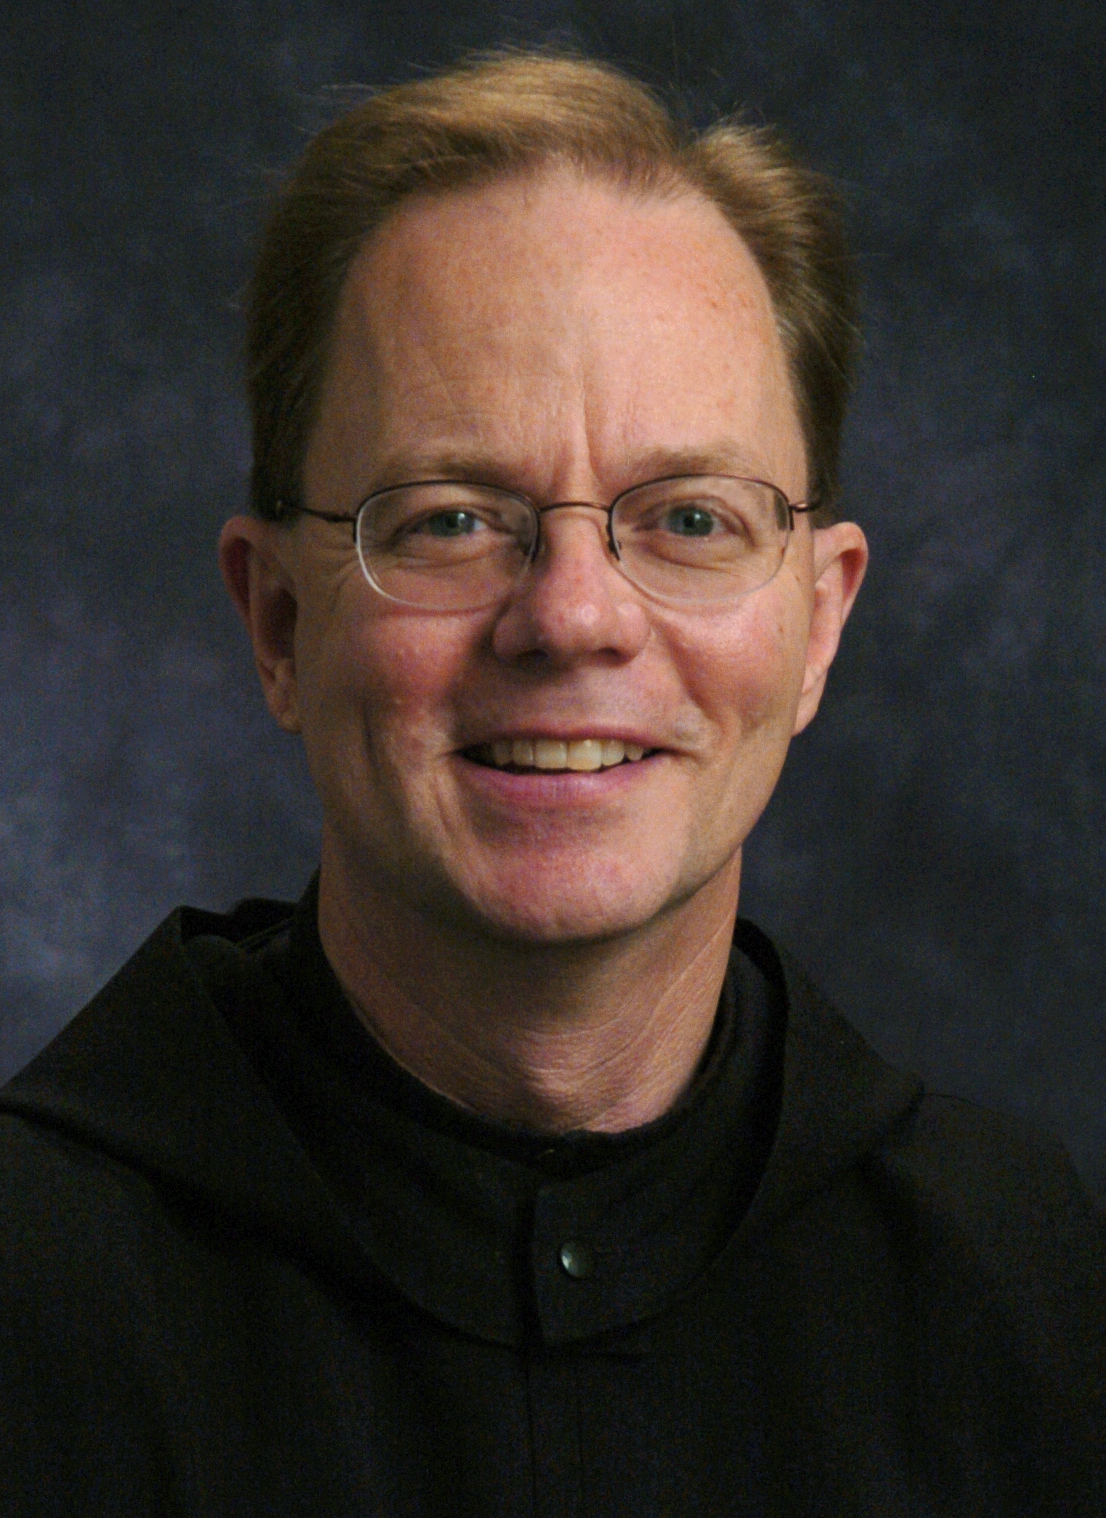 BR. PAUL-VINCENT NIEBAUER, OSB  Saint John's Abbey Vocation Team Leader;Director of Marketing & Communications;Saint John's Preparatory Theatre Director  B.A. Theatre and Secondary Education University of Wisconsin at Madison,1976;MA Directing, Chicago School of Performing Arts at Roosevelt University, 2002